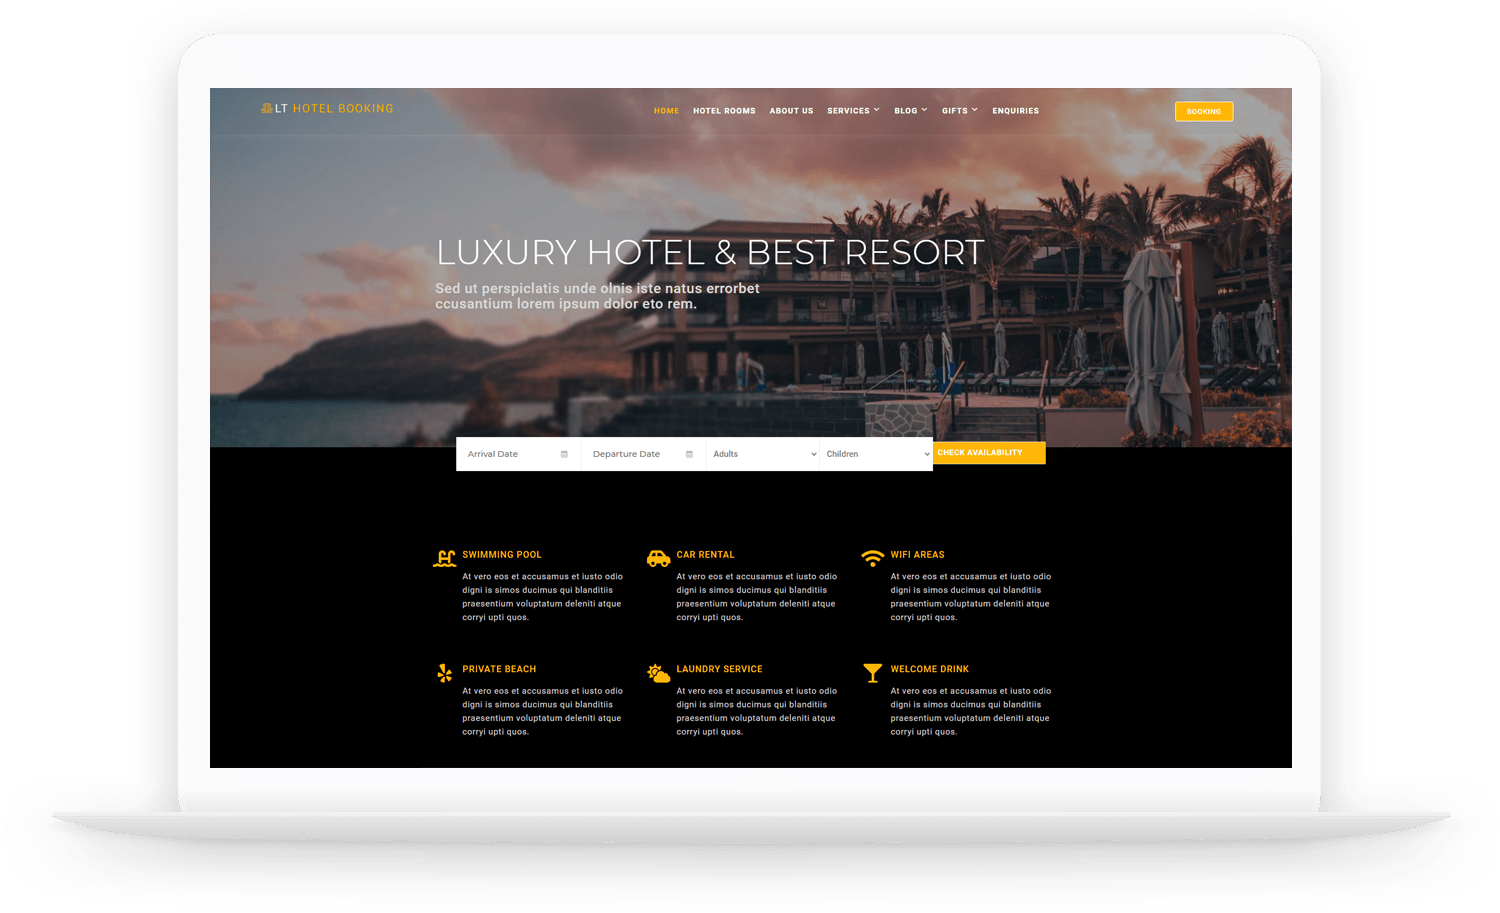 LT-Hotel-Booking-theme